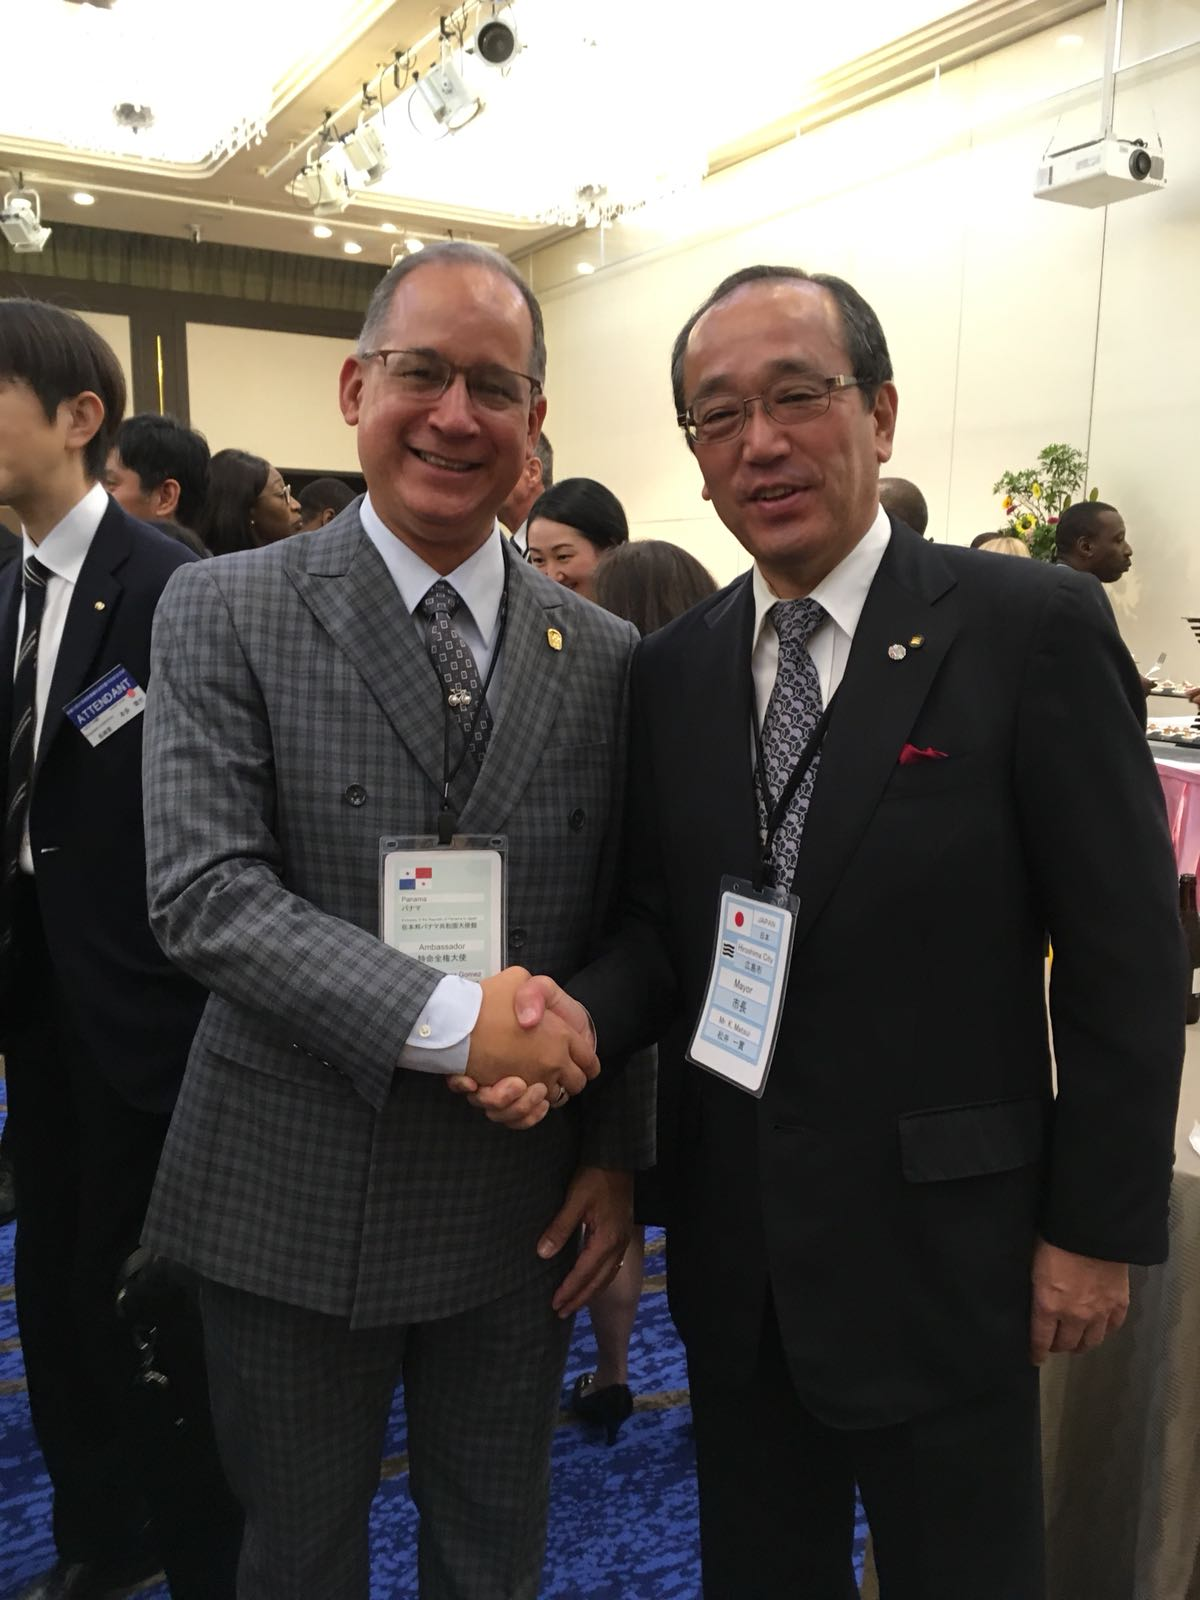 Ambassador Diaz with Mr. Kazumi Matsui, Mayor of Hiroshima city at the welcome reception held by Hiroshima city. .